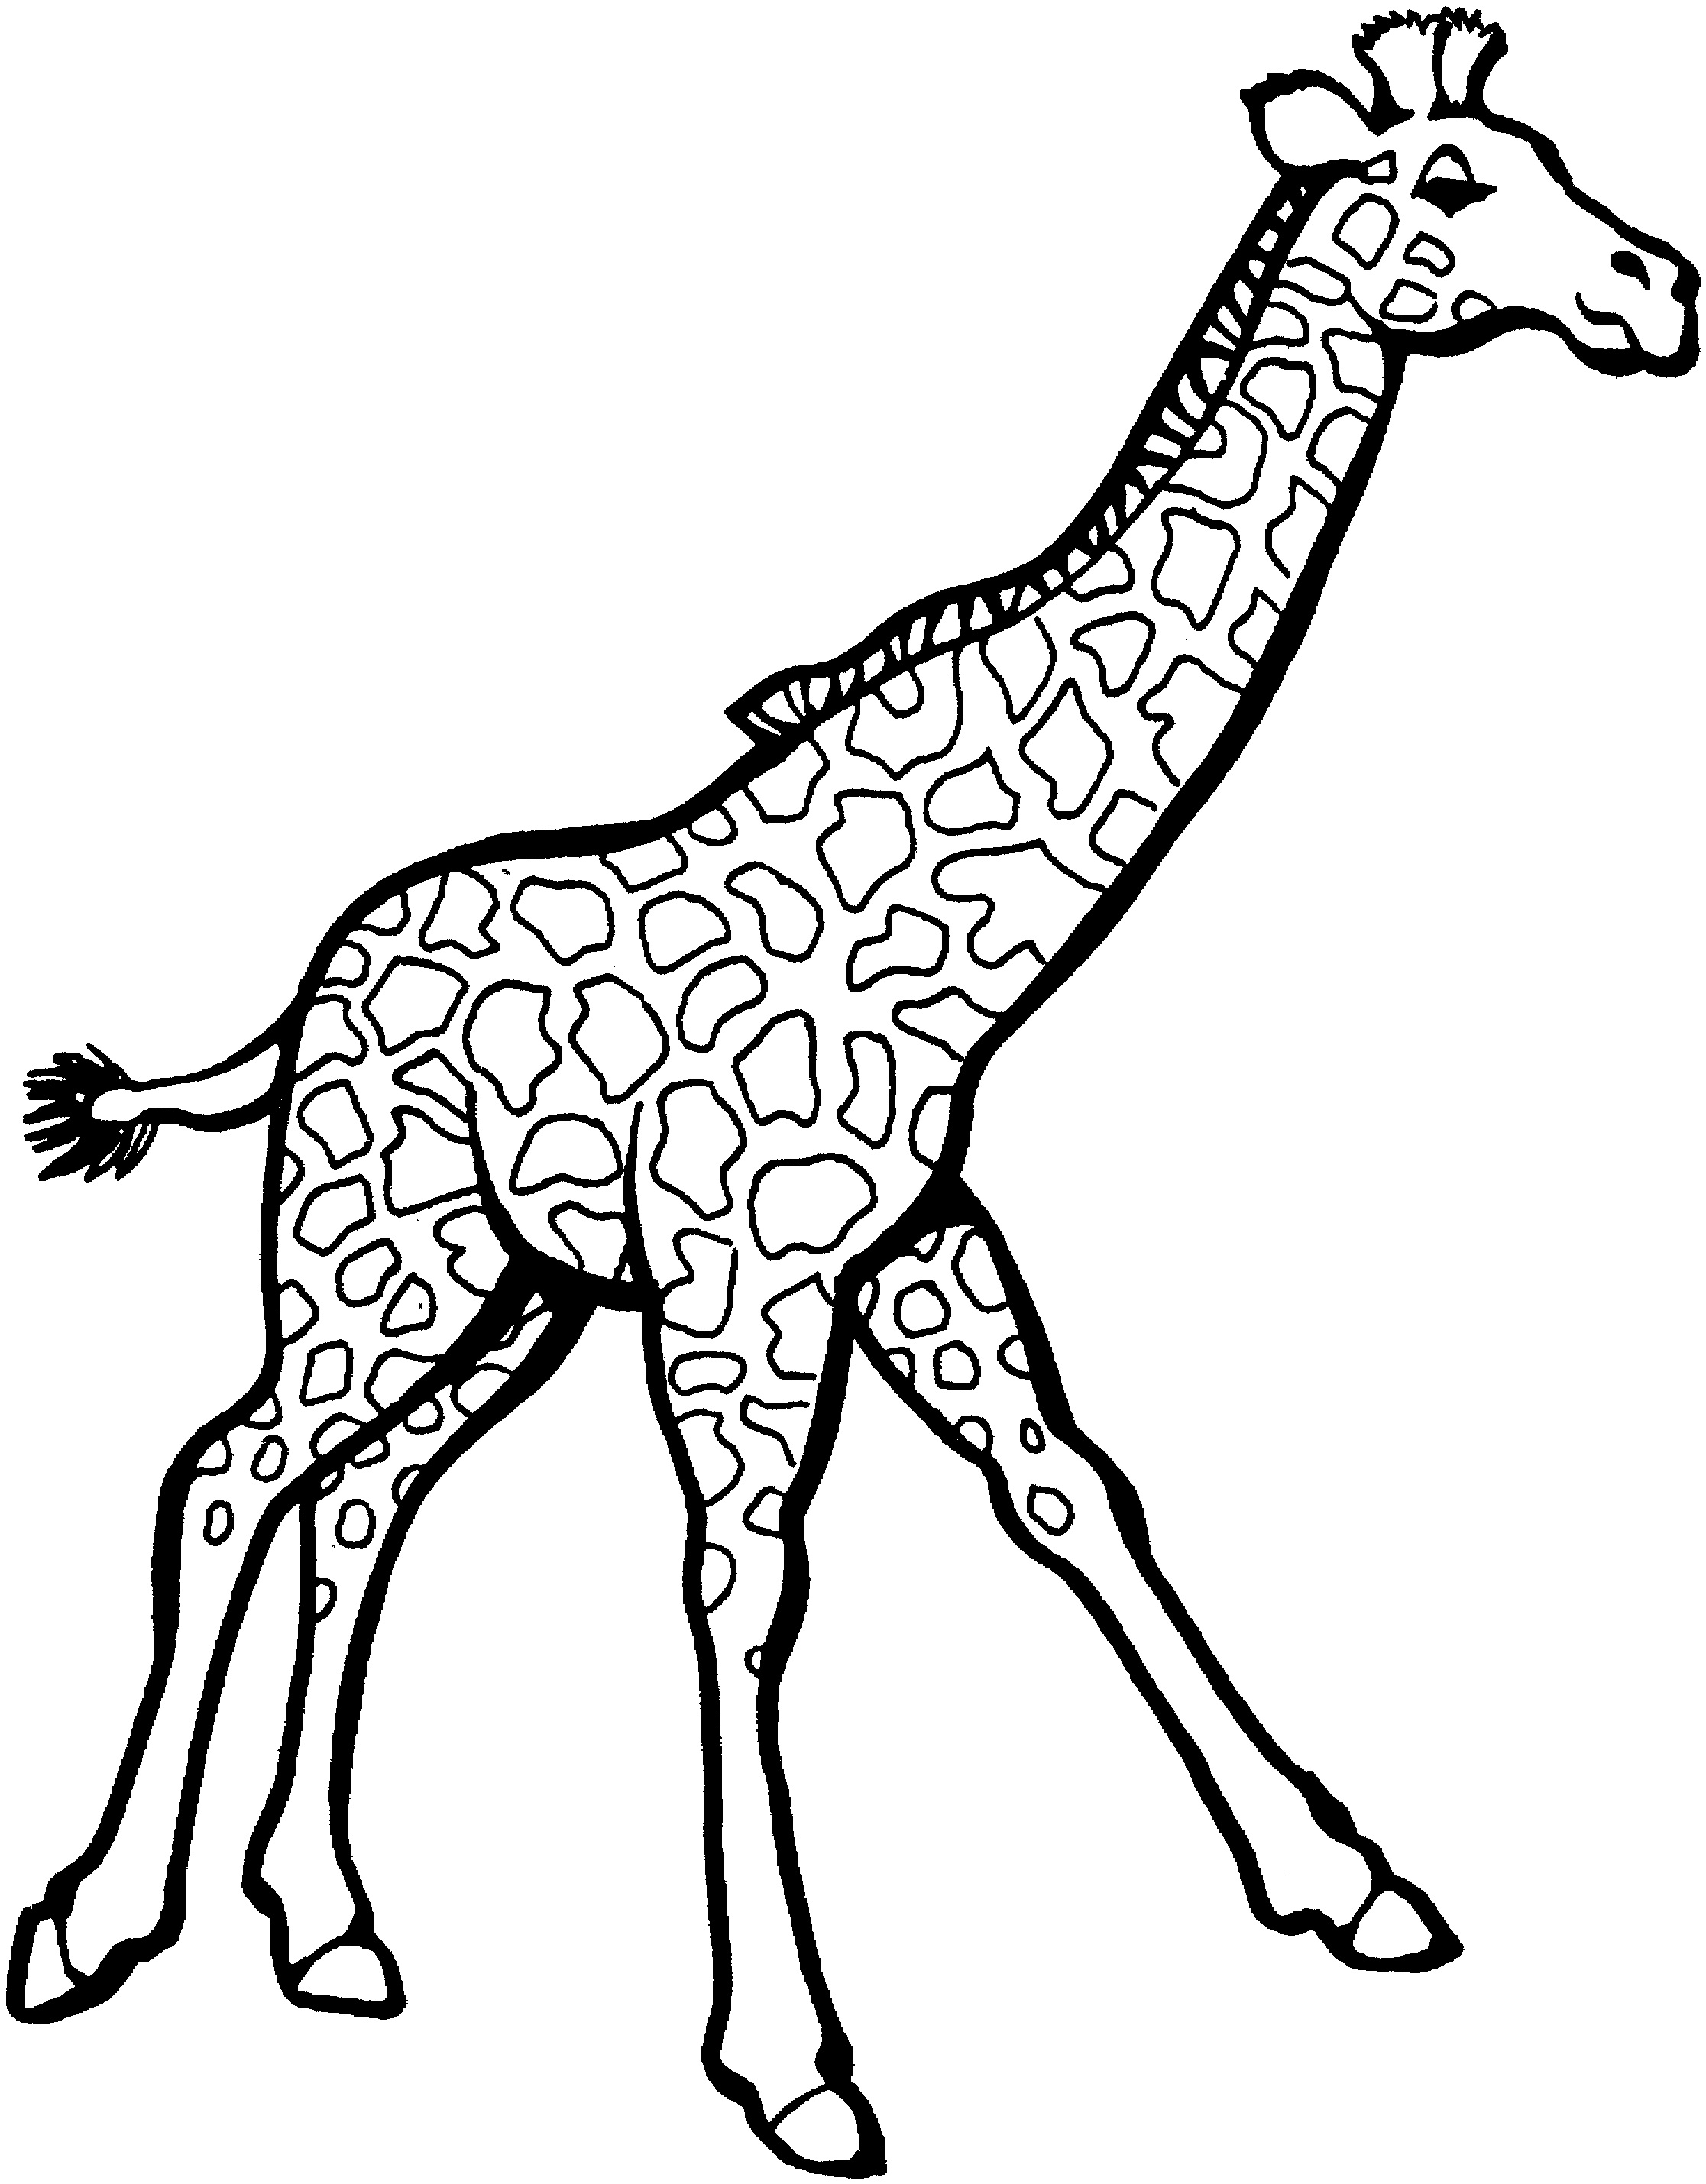 giraffe coloring pages - giraffe coloring pages for adults sketch templates